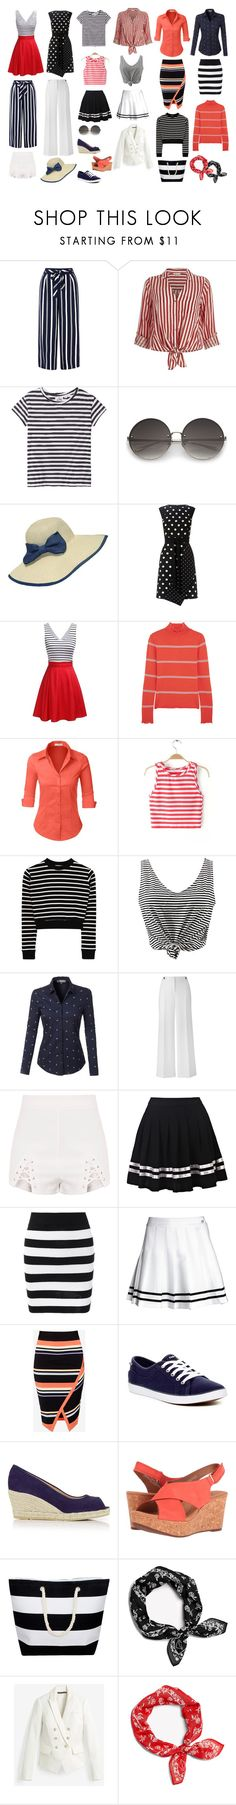 Travel Capsule #10   Idea for a budget Summer cruise travel capsule (lengthy cruise). 16-piece mix-and-match capsule + 2 dresses; 3 pairs of versatile shoes; handbag, 2 scarves, hat and sunglasses. #travel #budget #summer #cruise